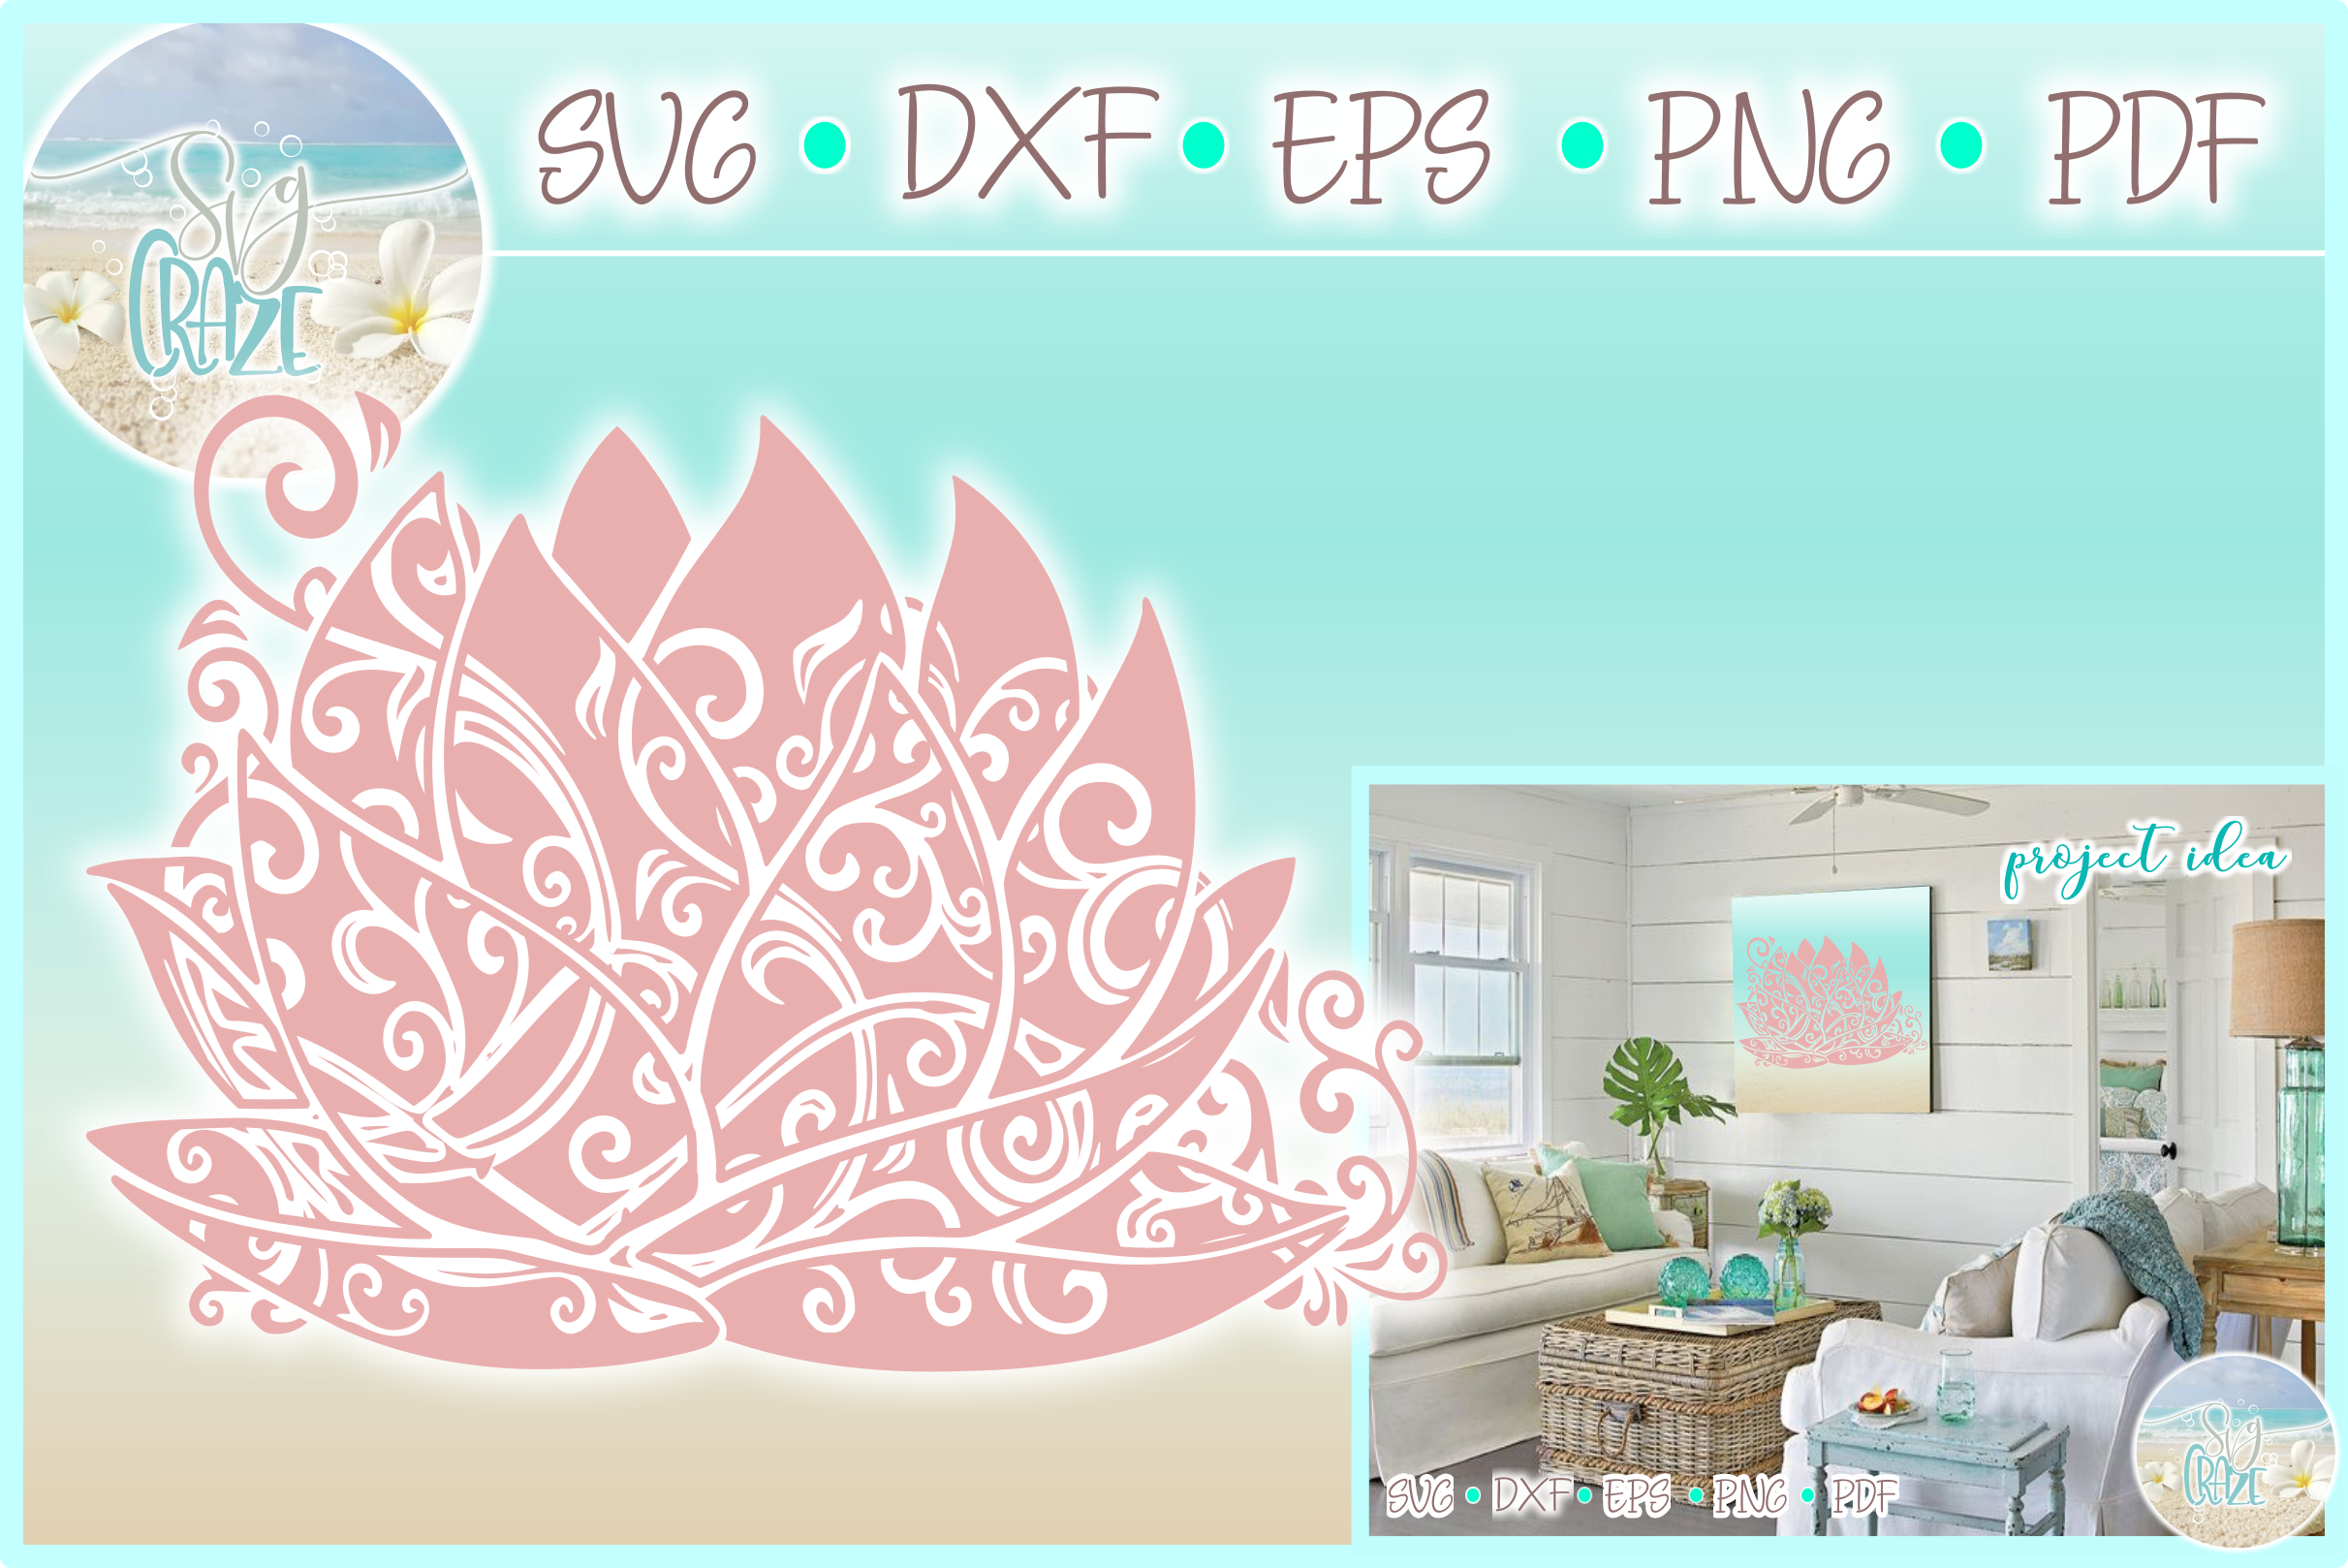 Lotus Water Lily Flower Mandala Svg Dxf Eps Png Pdf Files example image 1